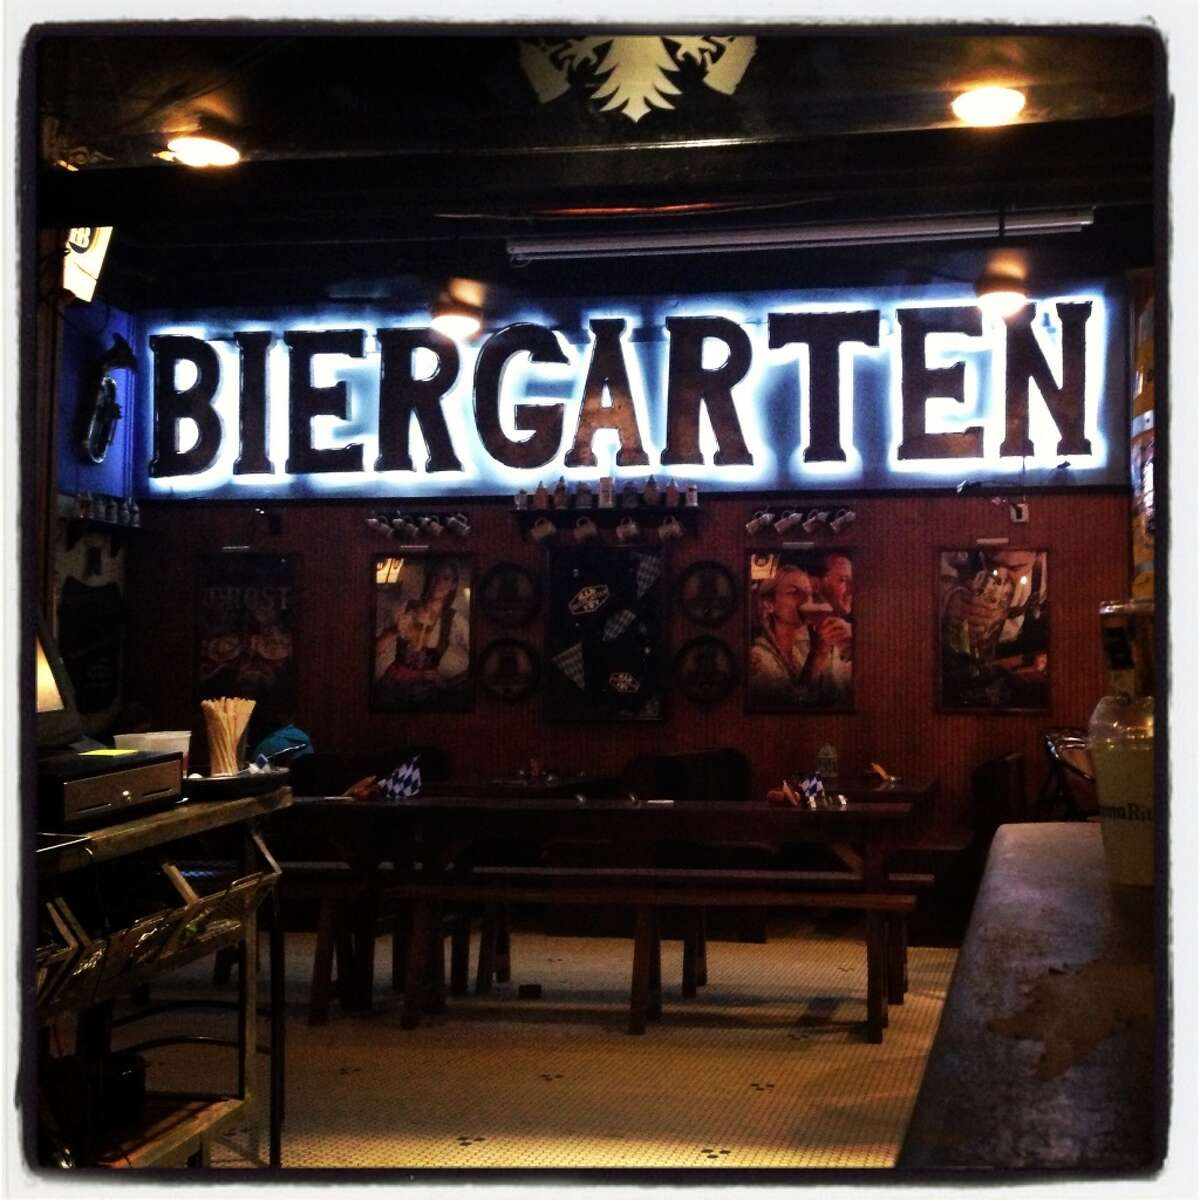 Biergarten, 126 Losoya St., will feature $5 green beer and green margaritas from Friday until Sunday. Find out more info here.